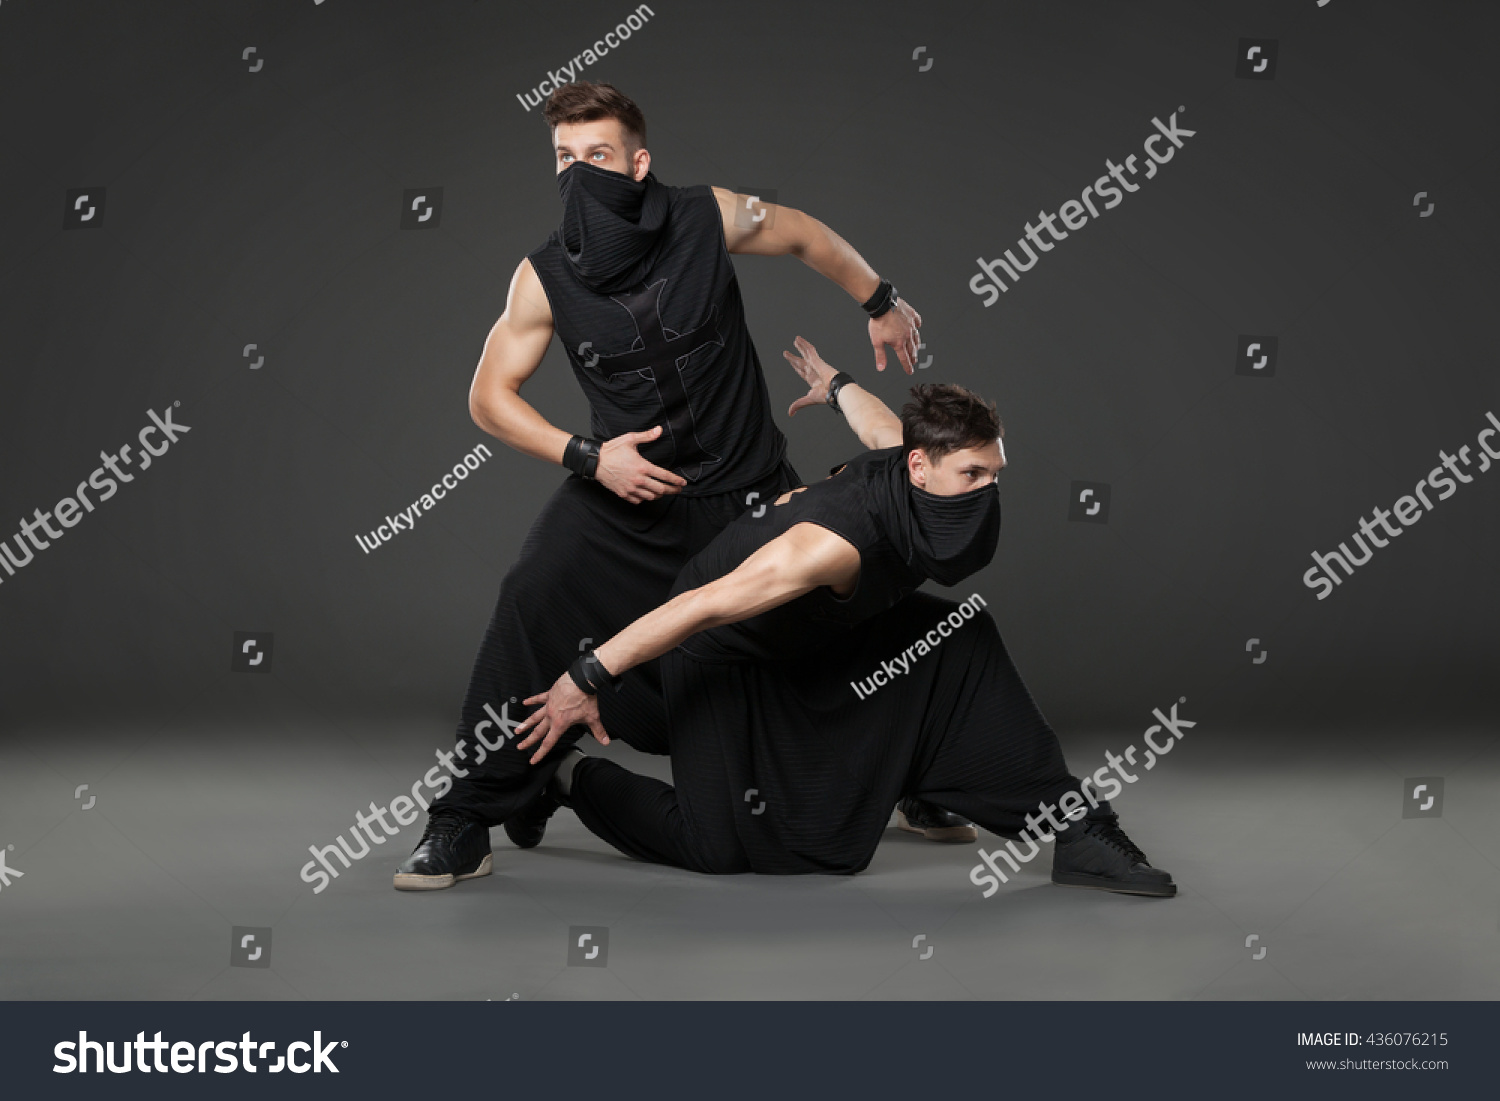 993ff8a1425d9 Two male dancers dancing in ninja costumes against gray background.